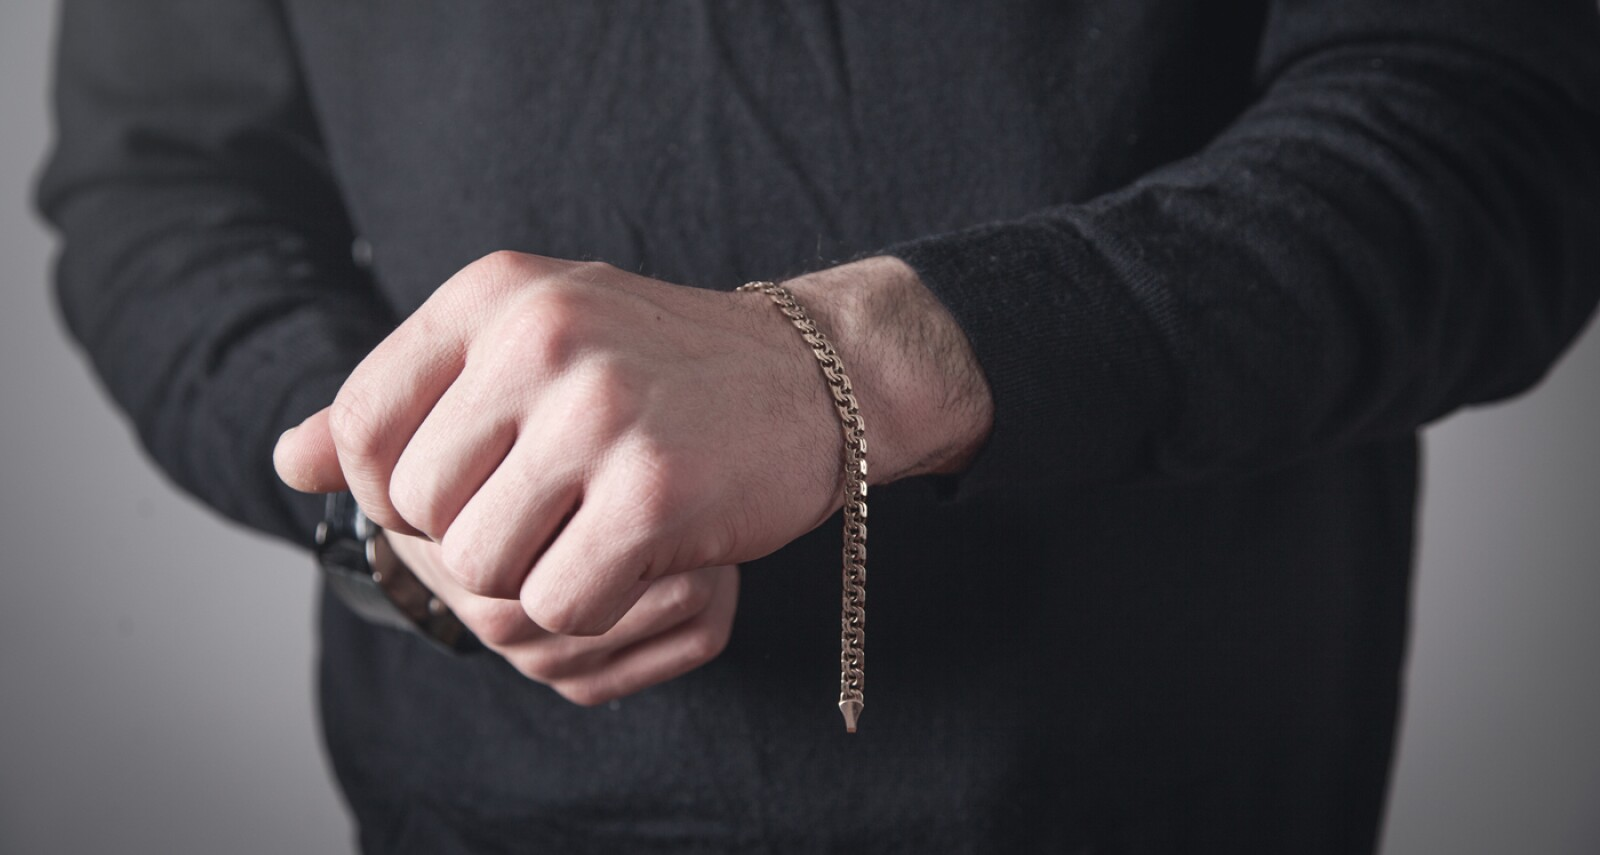 Man with a expensive bracelet. Fashion accessories and jewelry